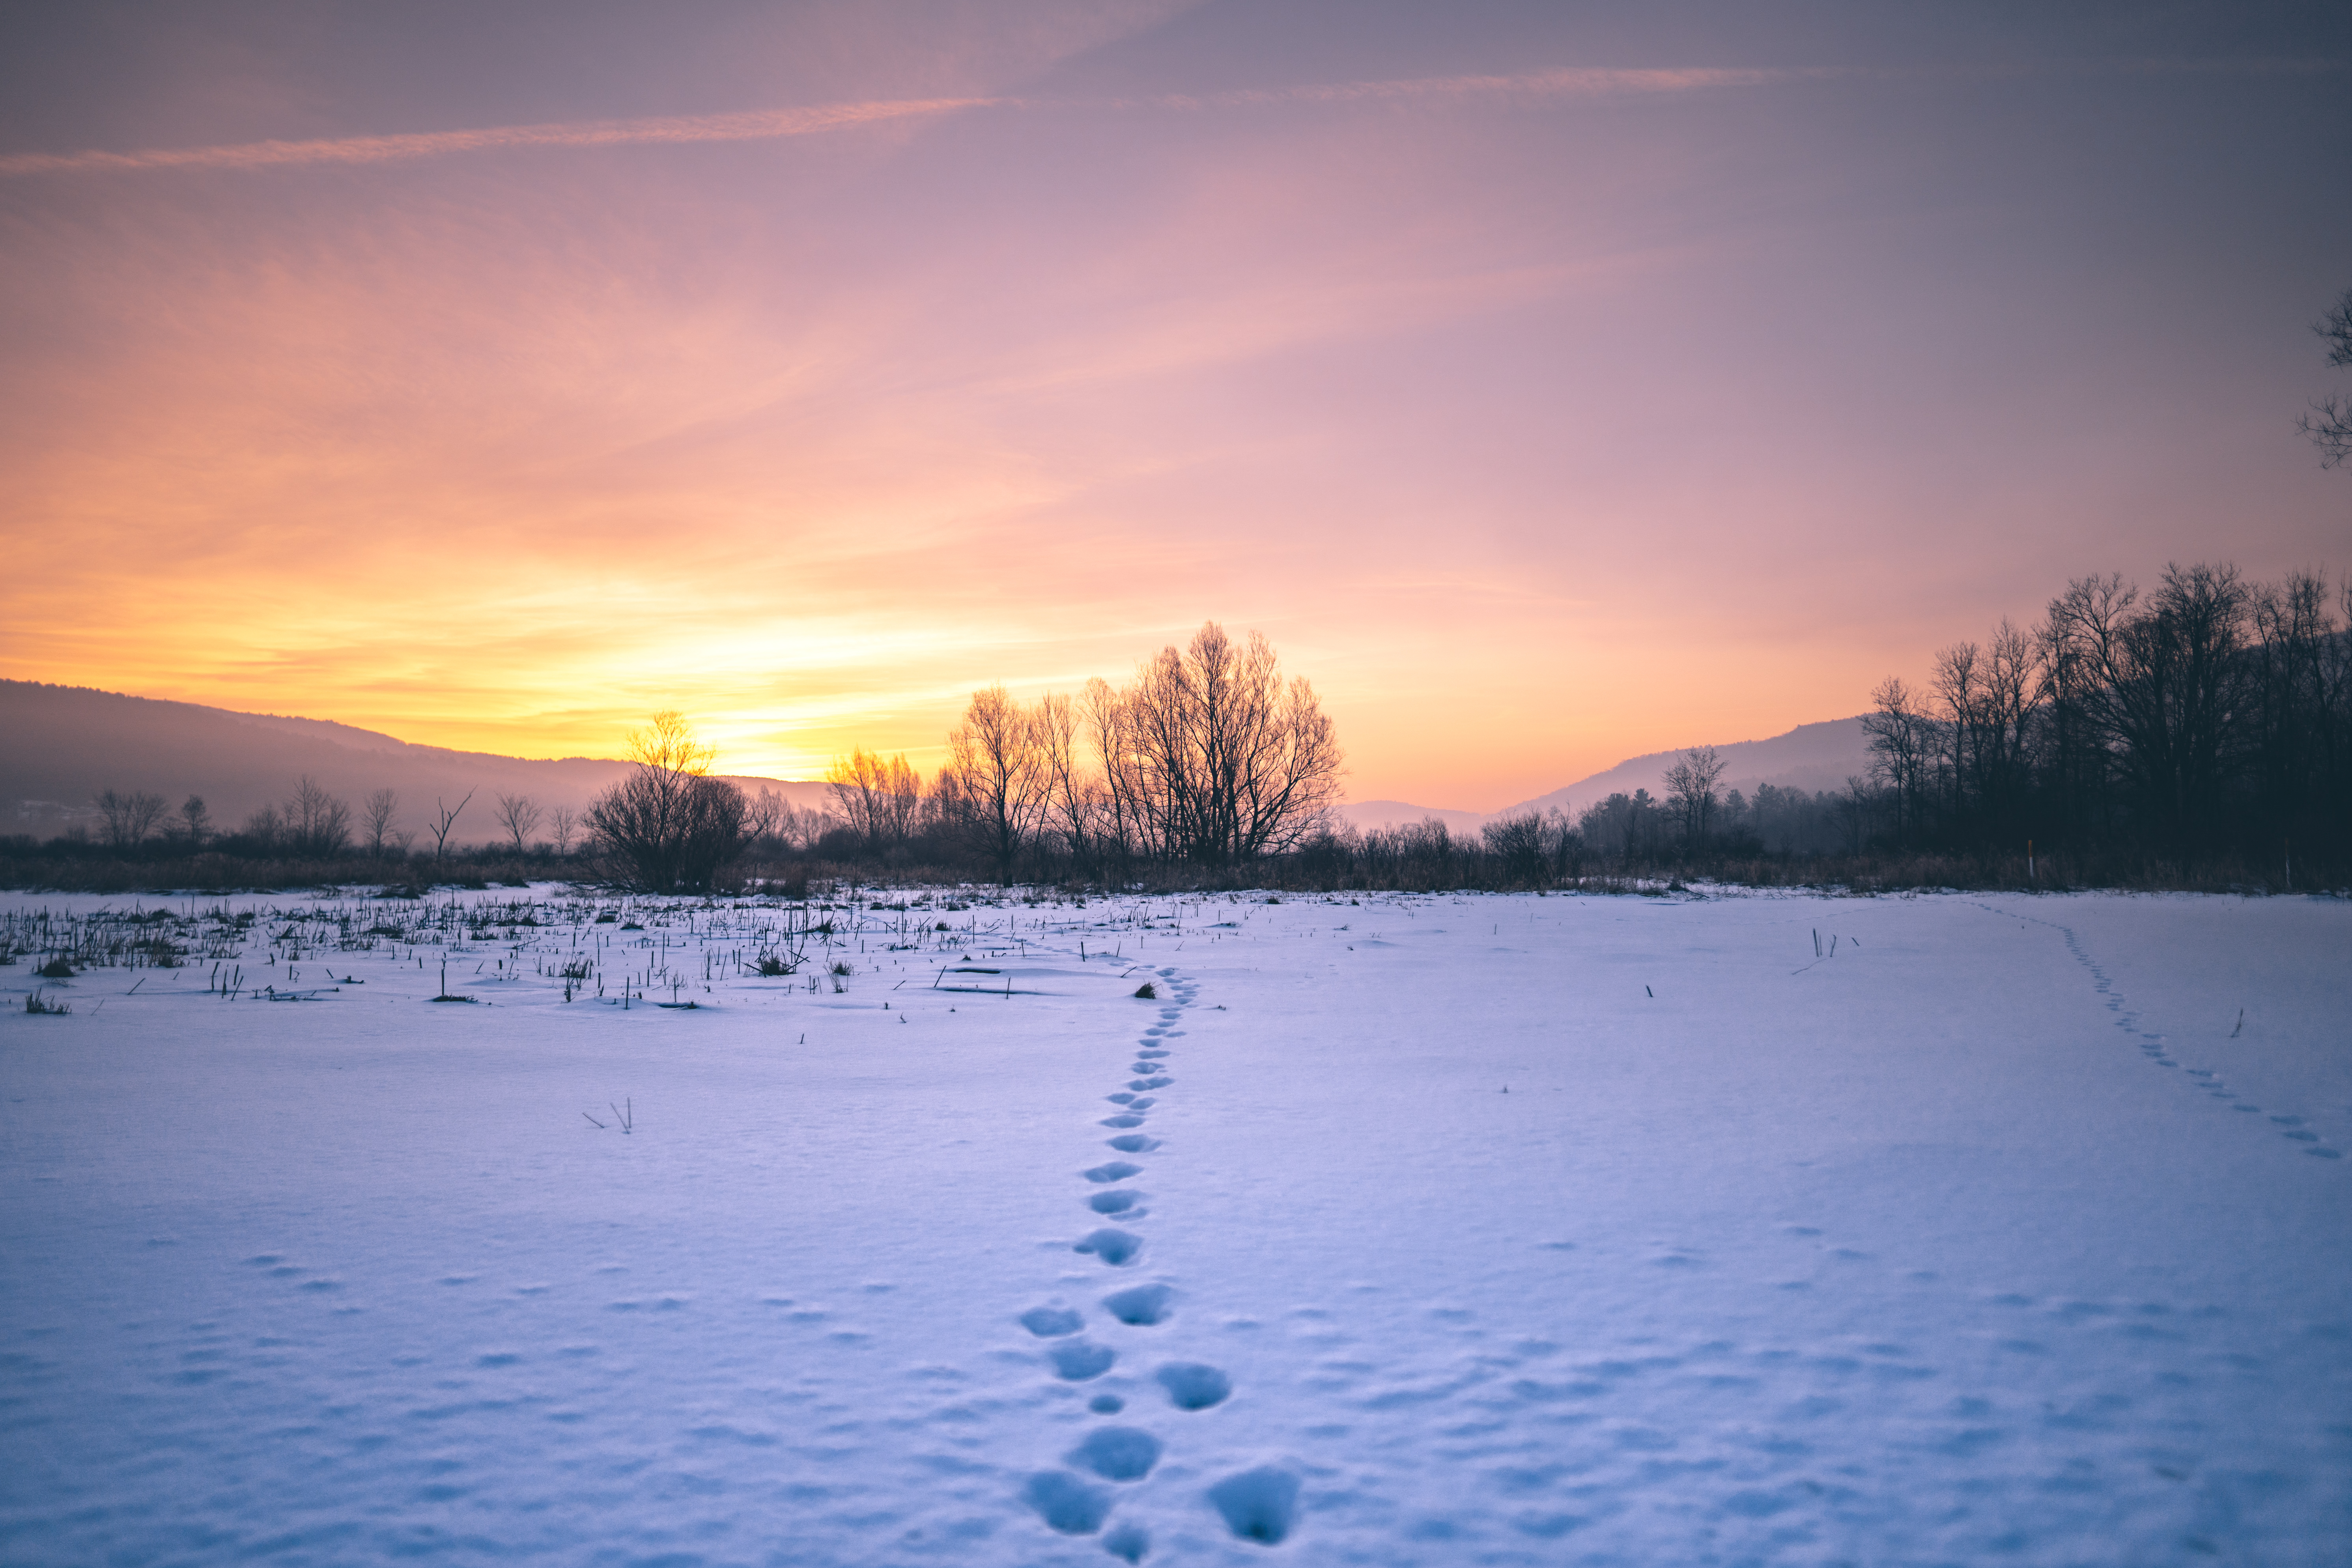 An expansive winer landscape, with a snow-covered field leading toward mountains, and there are foot tracks in the snow.